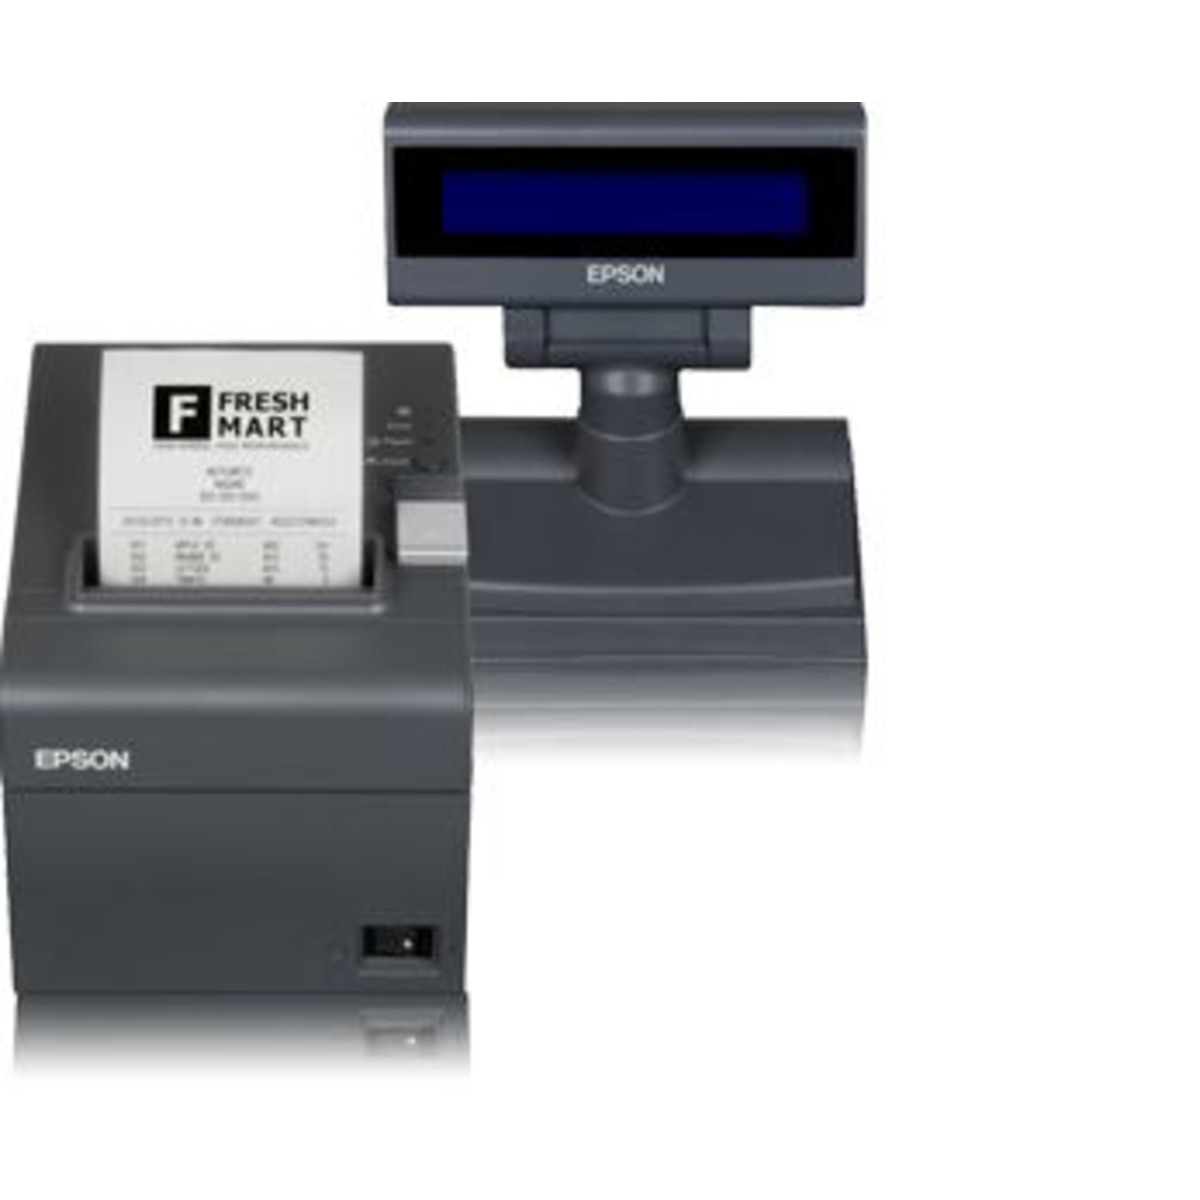 8715946676197-epson-fp-81ii-rt-014jd-italy-fiscal-ps-lcd-std-eth-58mm-k23-edg